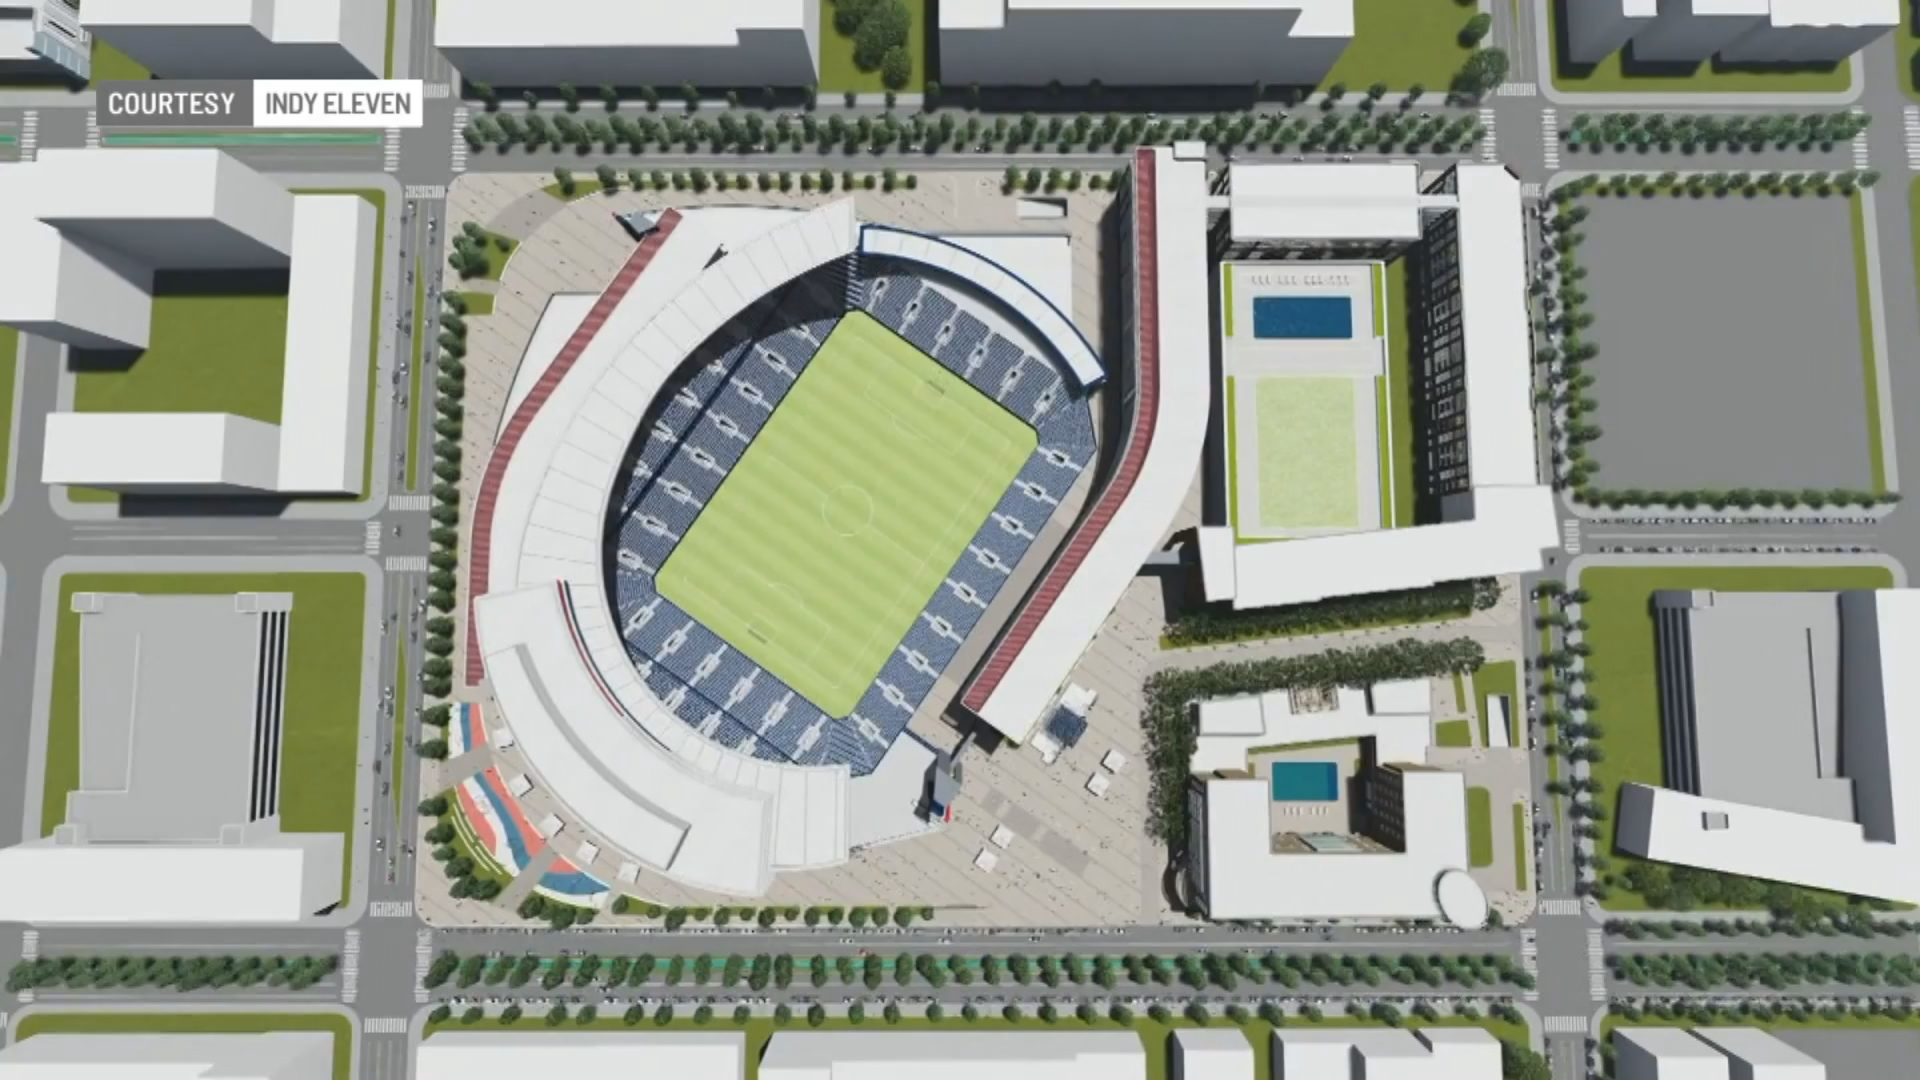 Indy Eleven stadium proposal